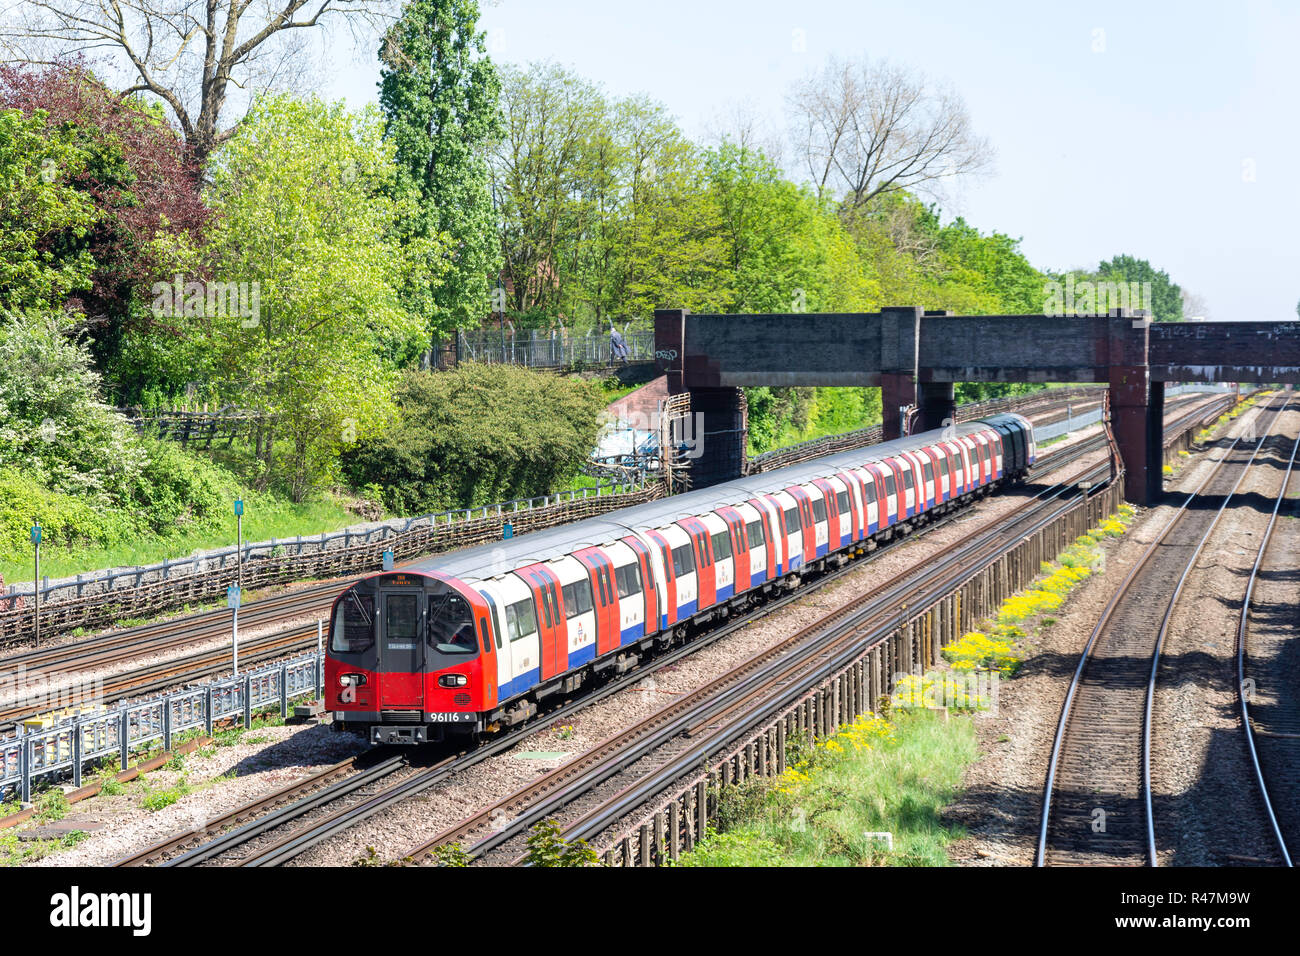 Train approaching Willesden Green Underground Station, Willesden, London Borough of Brent, Greater London, England, United Kingdom - Stock Image